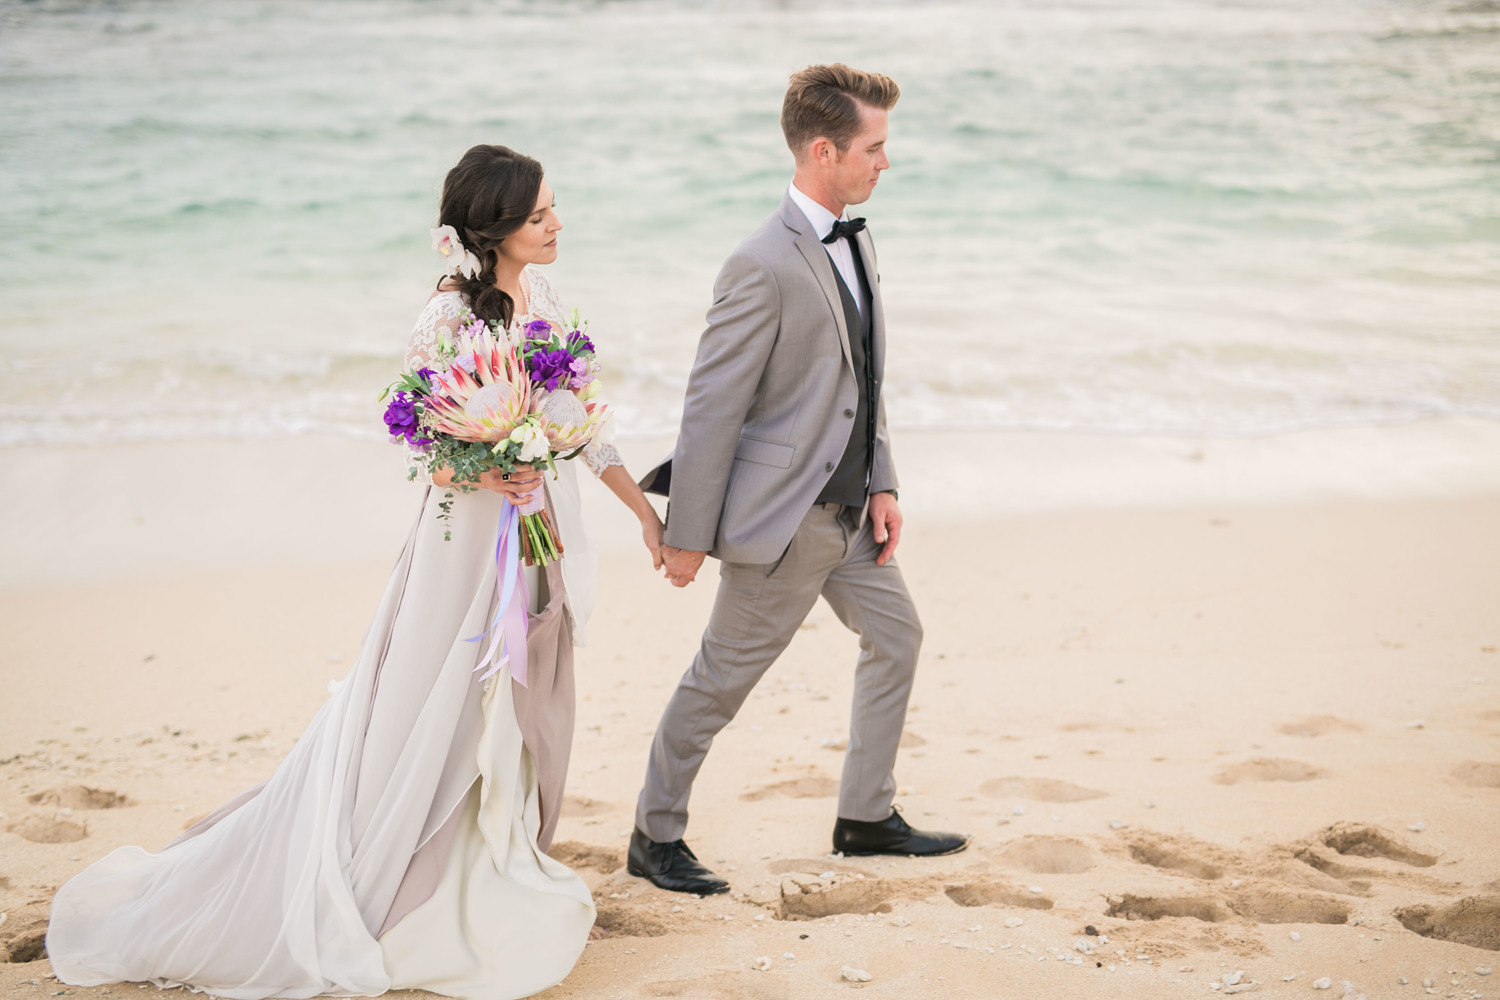 Hawaiian Wedding Dresses Couture Rtw Gowns Joelle Perry Fashion